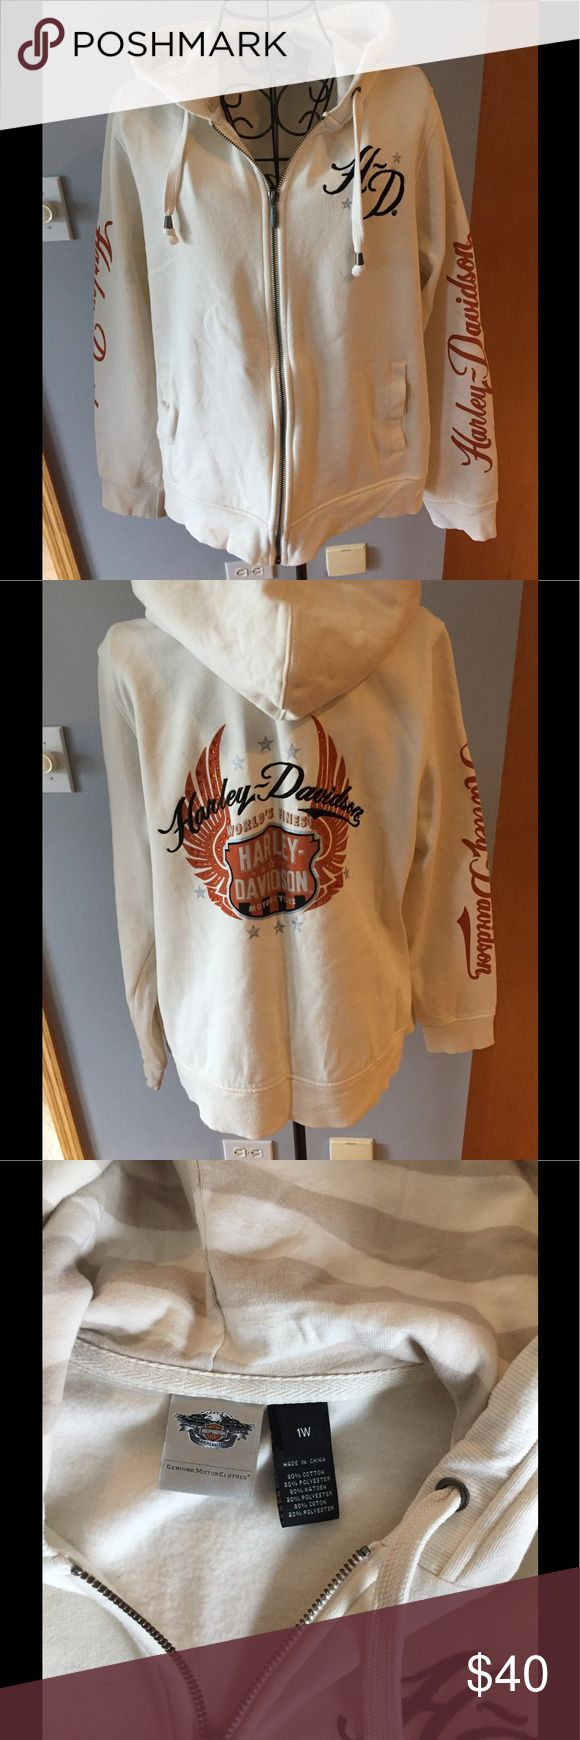 NWOT Harley Davidson Zip Up Sweatshirt NWOT Harley Davidson cream zip up sweatshirt. Re posh. Never worn, purchased NWT,  Cut tags off, washed and line dried. Bling  and embroidered. Striped inside hoodie Harley-Davidson Tops Sweatshirts & Hoodies